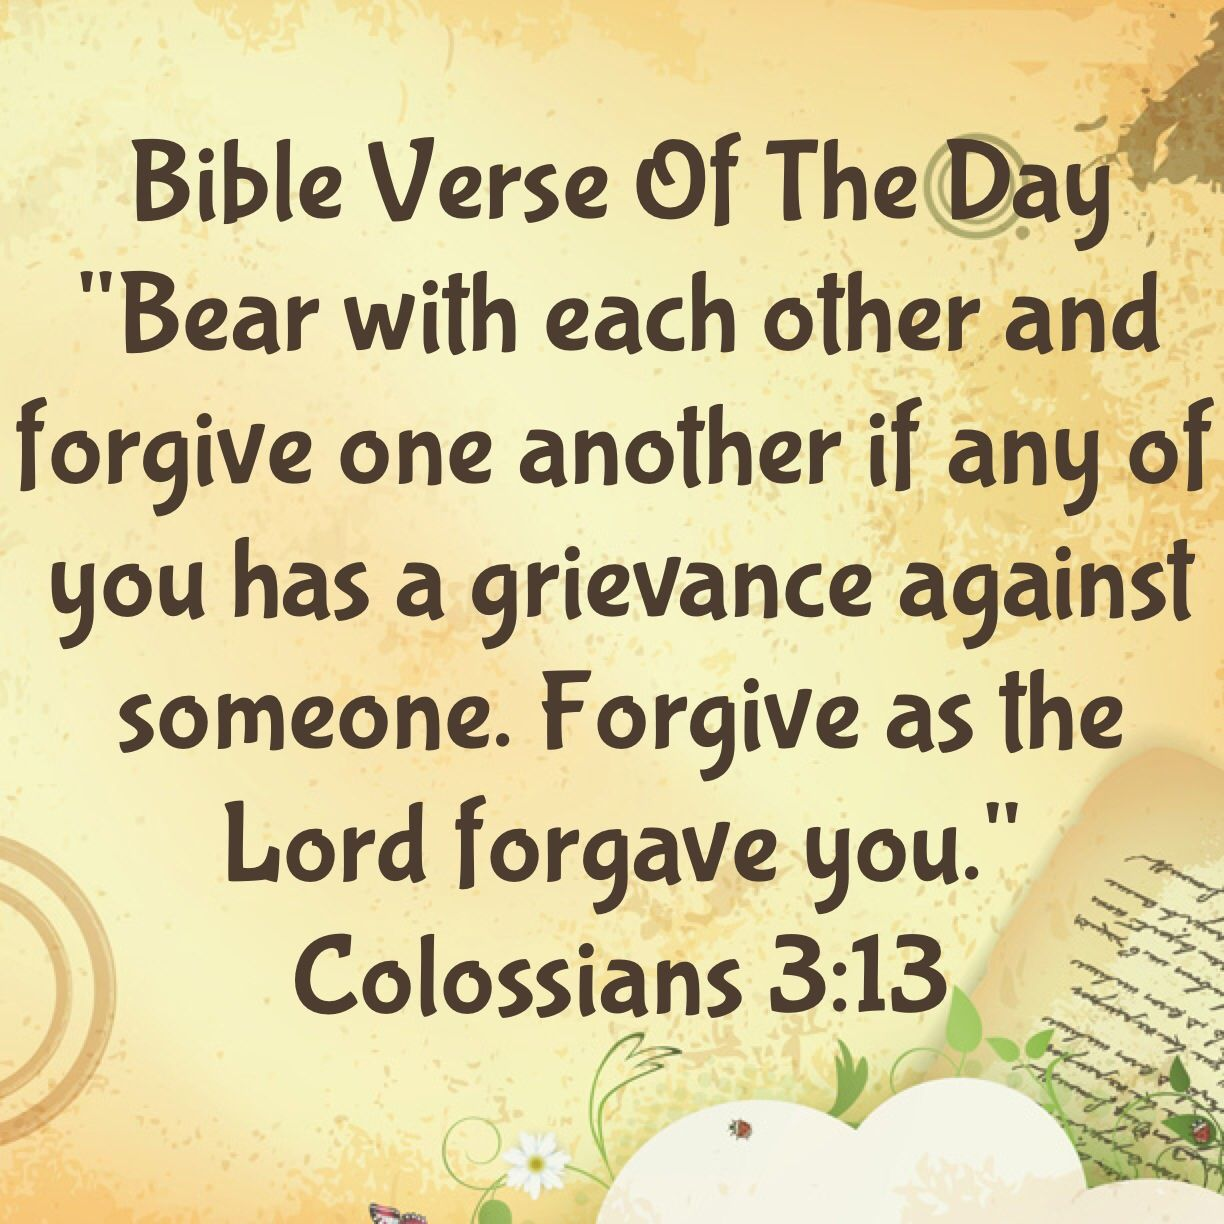 Effective apologies and forgiving the christian